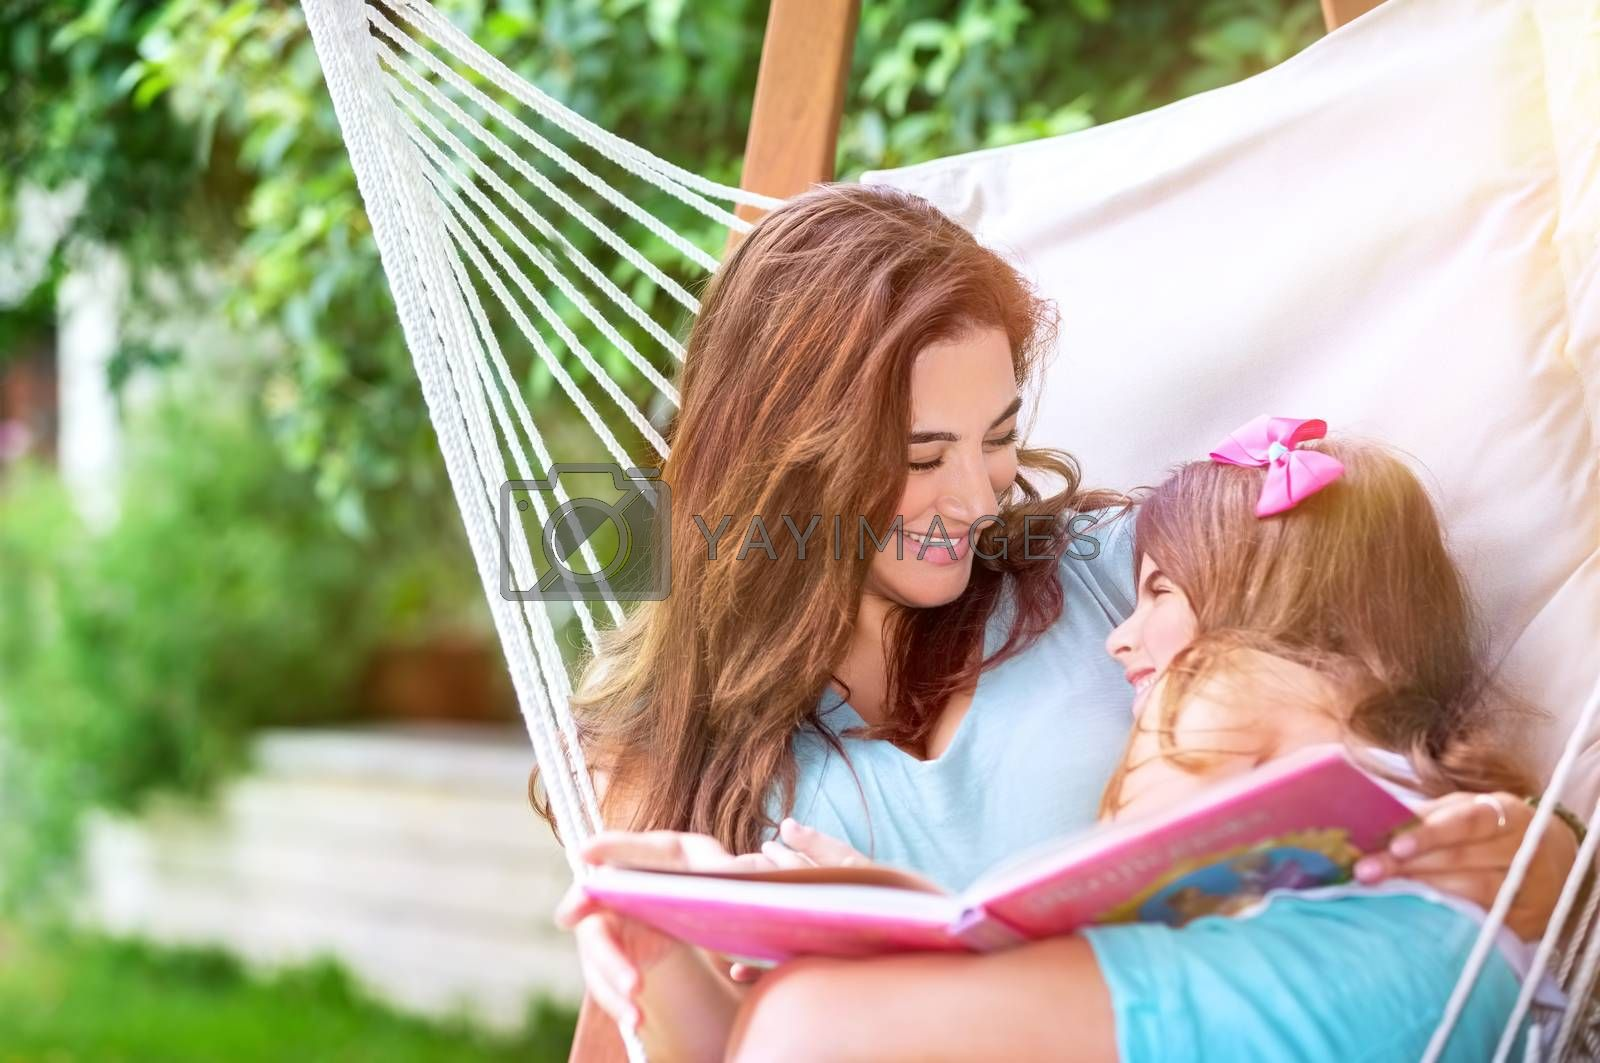 Cheerful mother with baby daughter having fun outdoors, relaxing in hammock and reading funny story, happy family spending time in countryside